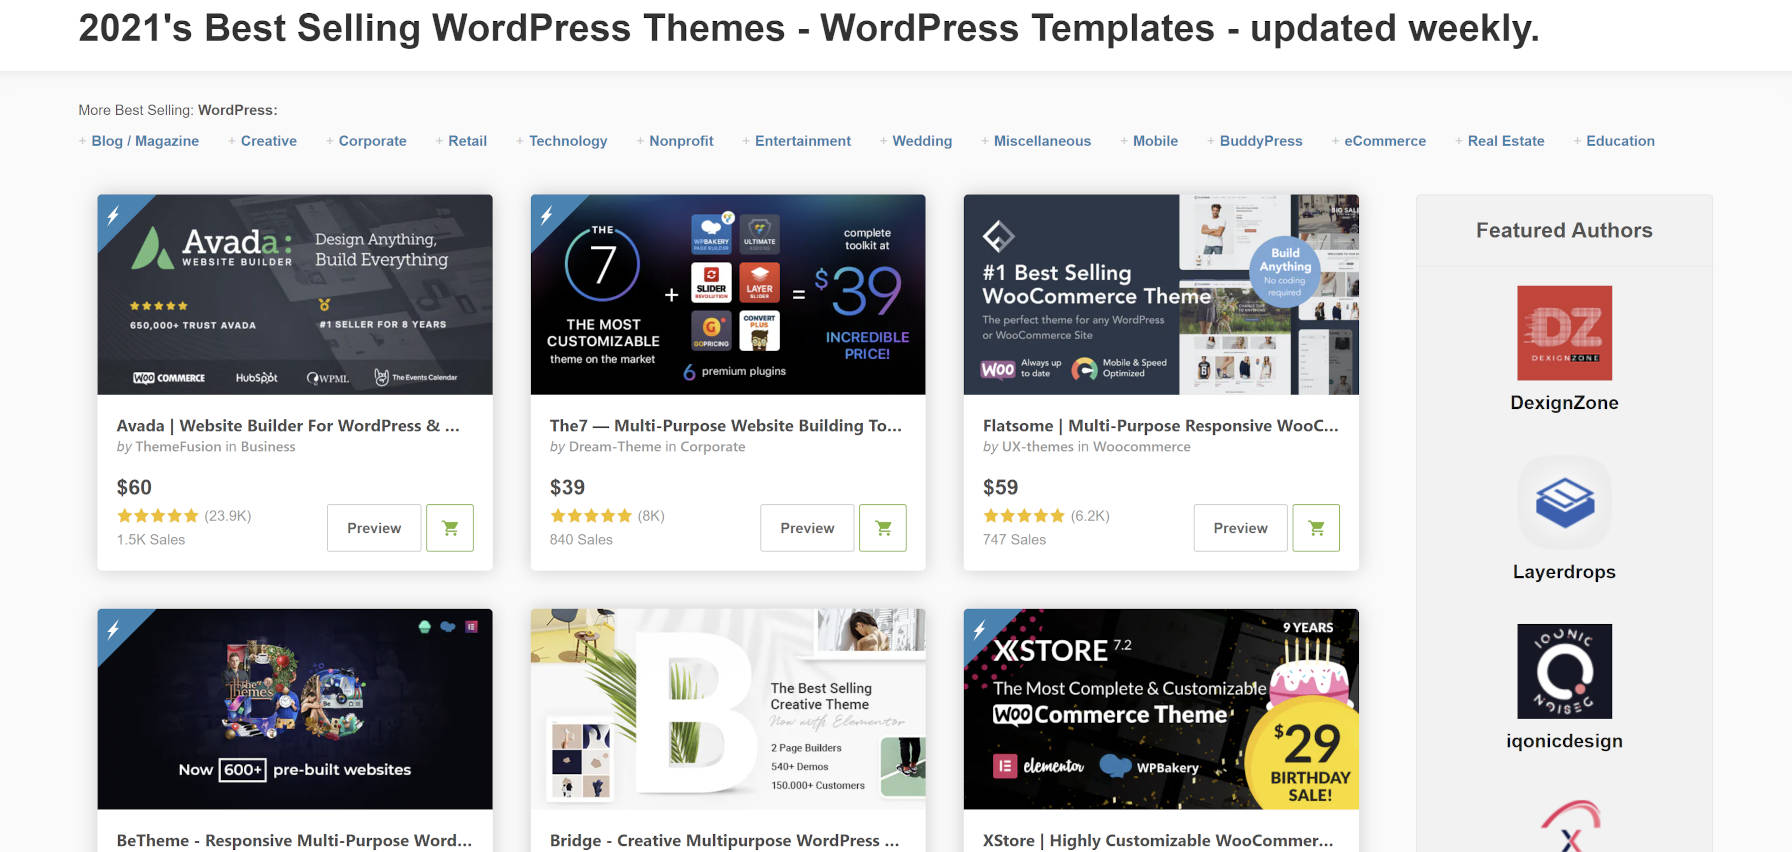 Screenshot of the Themeforest WordPress themes page.